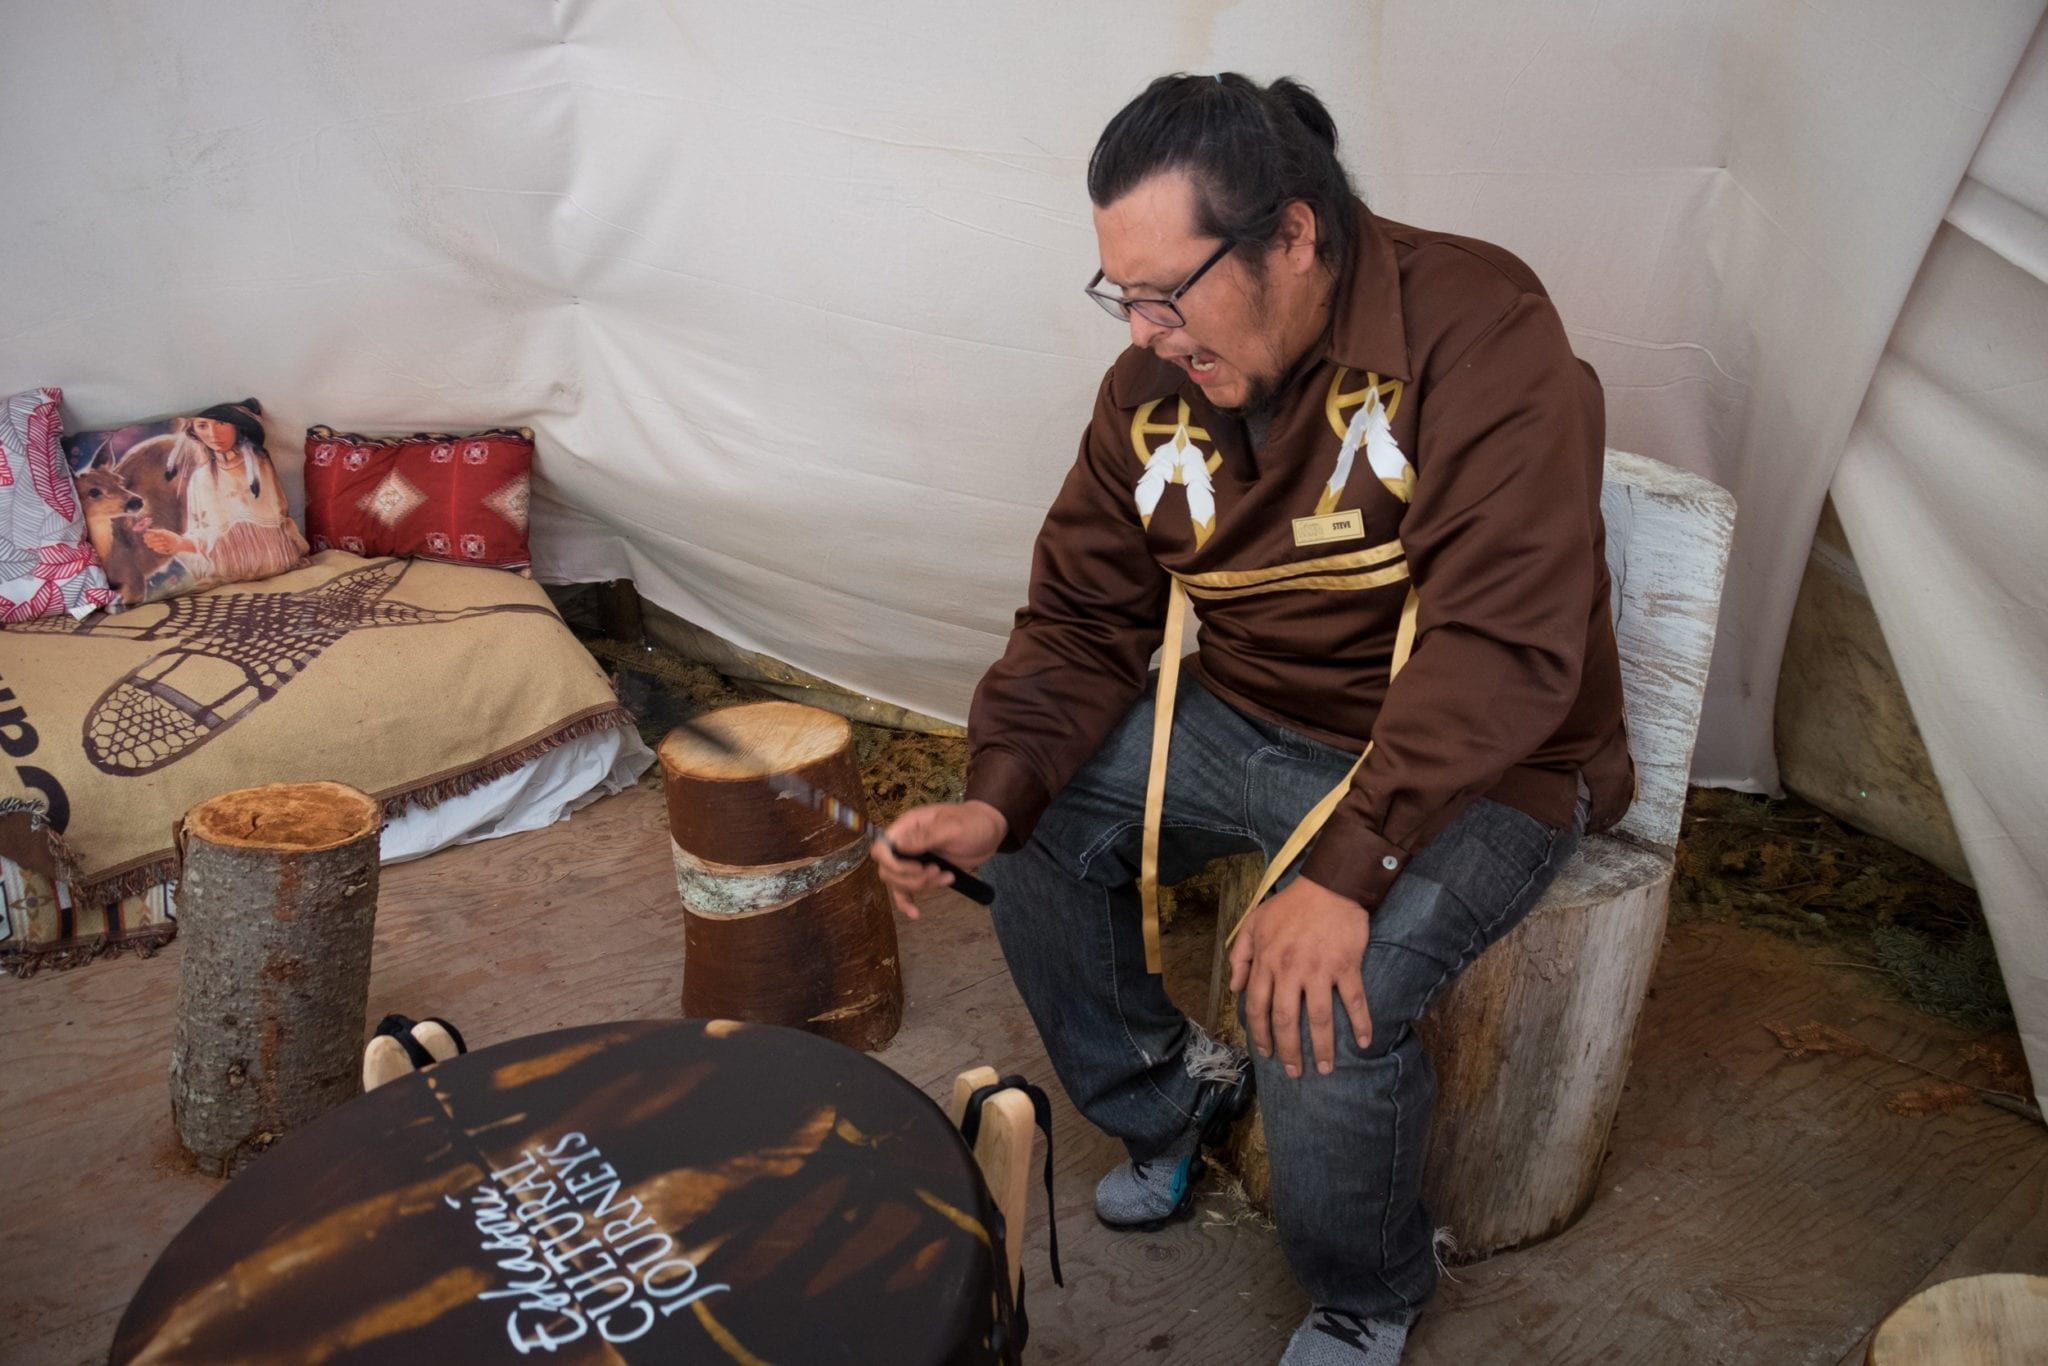 A Mi'kmaq man plays a drum and sings.